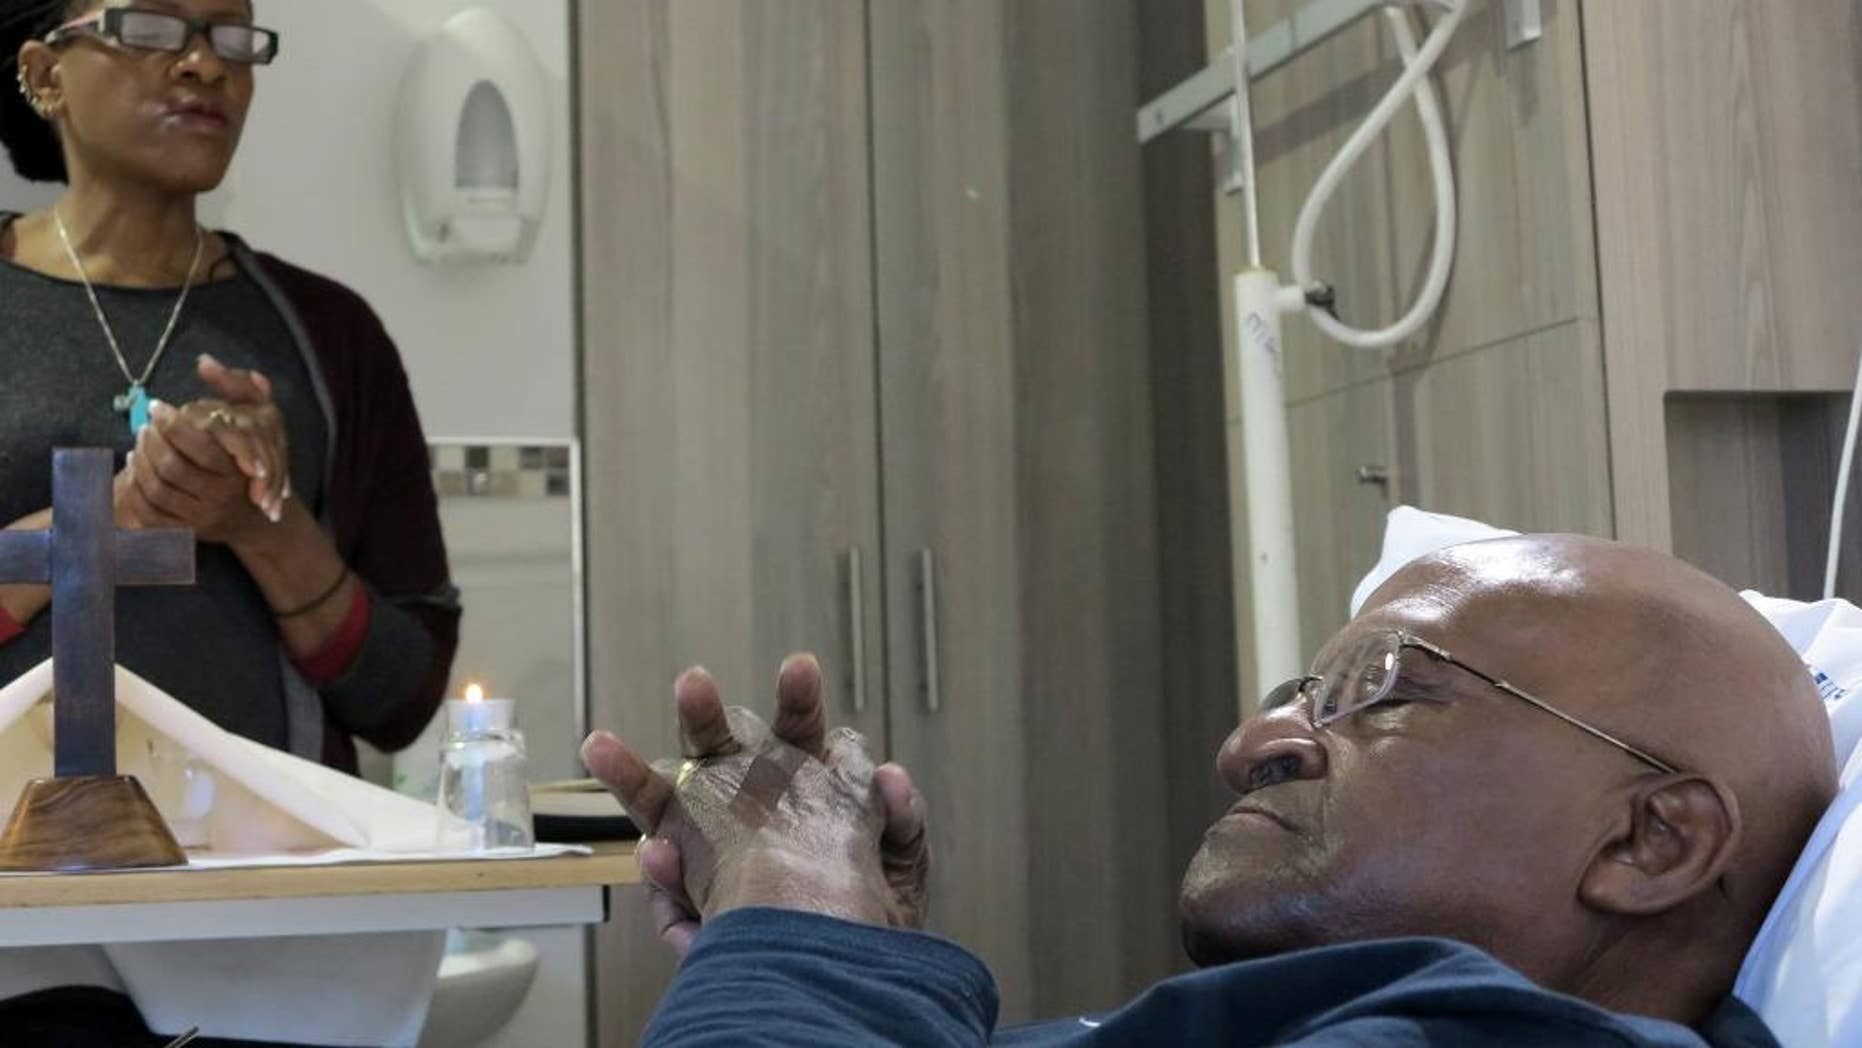 In this photo provided by Oryx Media shows retired Anglican Archbishop Desmond Tutu, praying in his hospital bed in Cape Town, South Africa Tuesday Aug. 4, 2015. Tutu left the hospital after being treated for an infection there since last month, his foundation said.  (Benny Gool/Oryx Media via AP) CREDIT MANDATORY